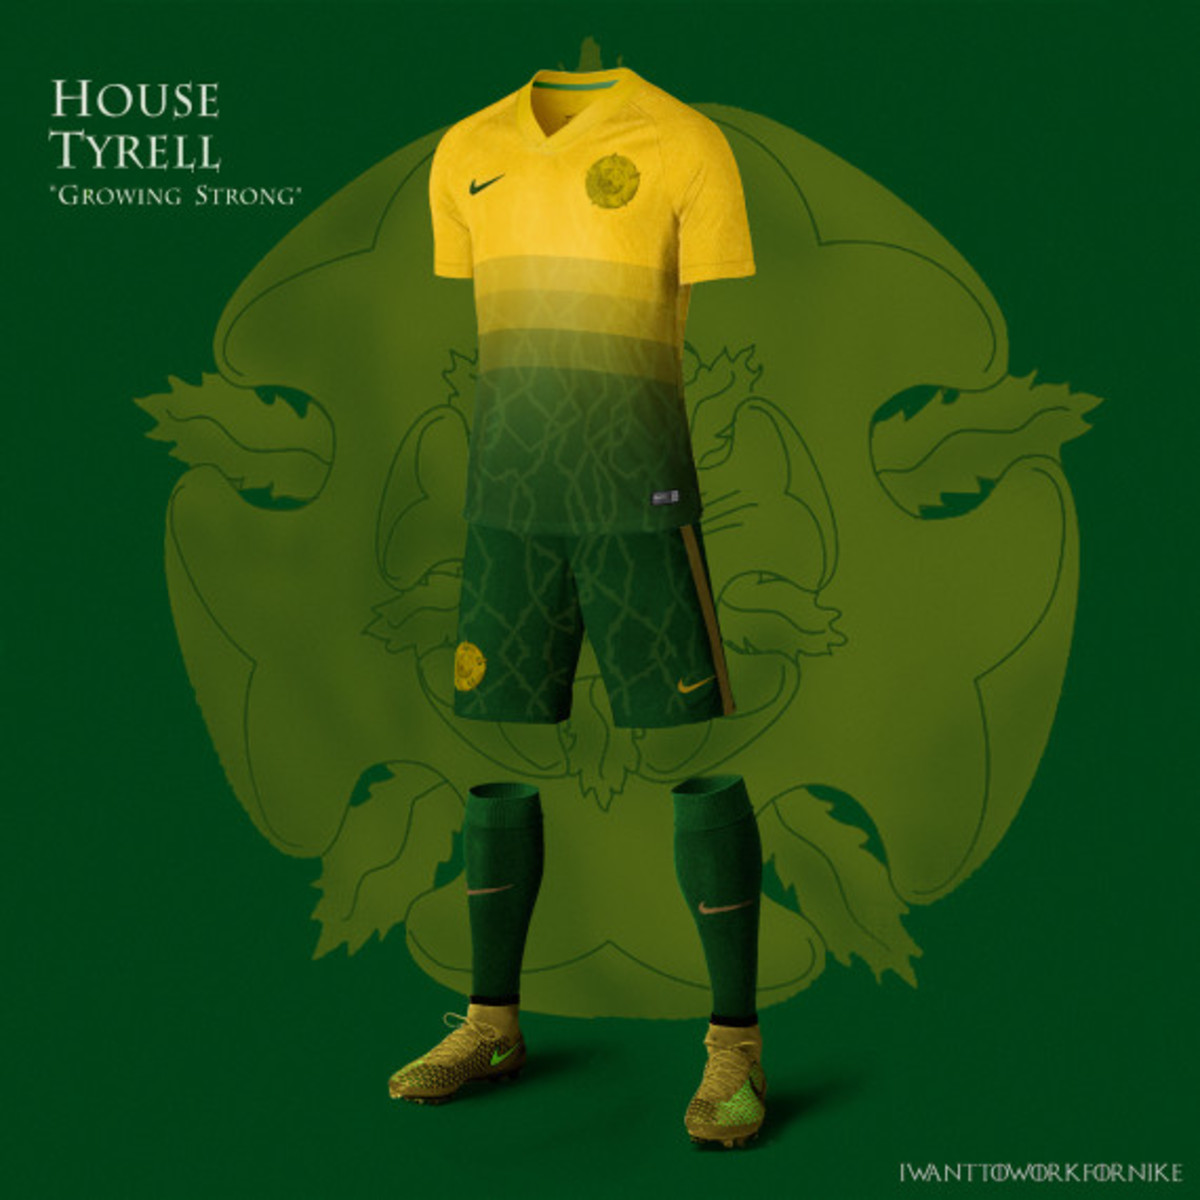 Game of Thrones-inspired Nike Soccer Kit Concepts by Nerea Palacios - 8